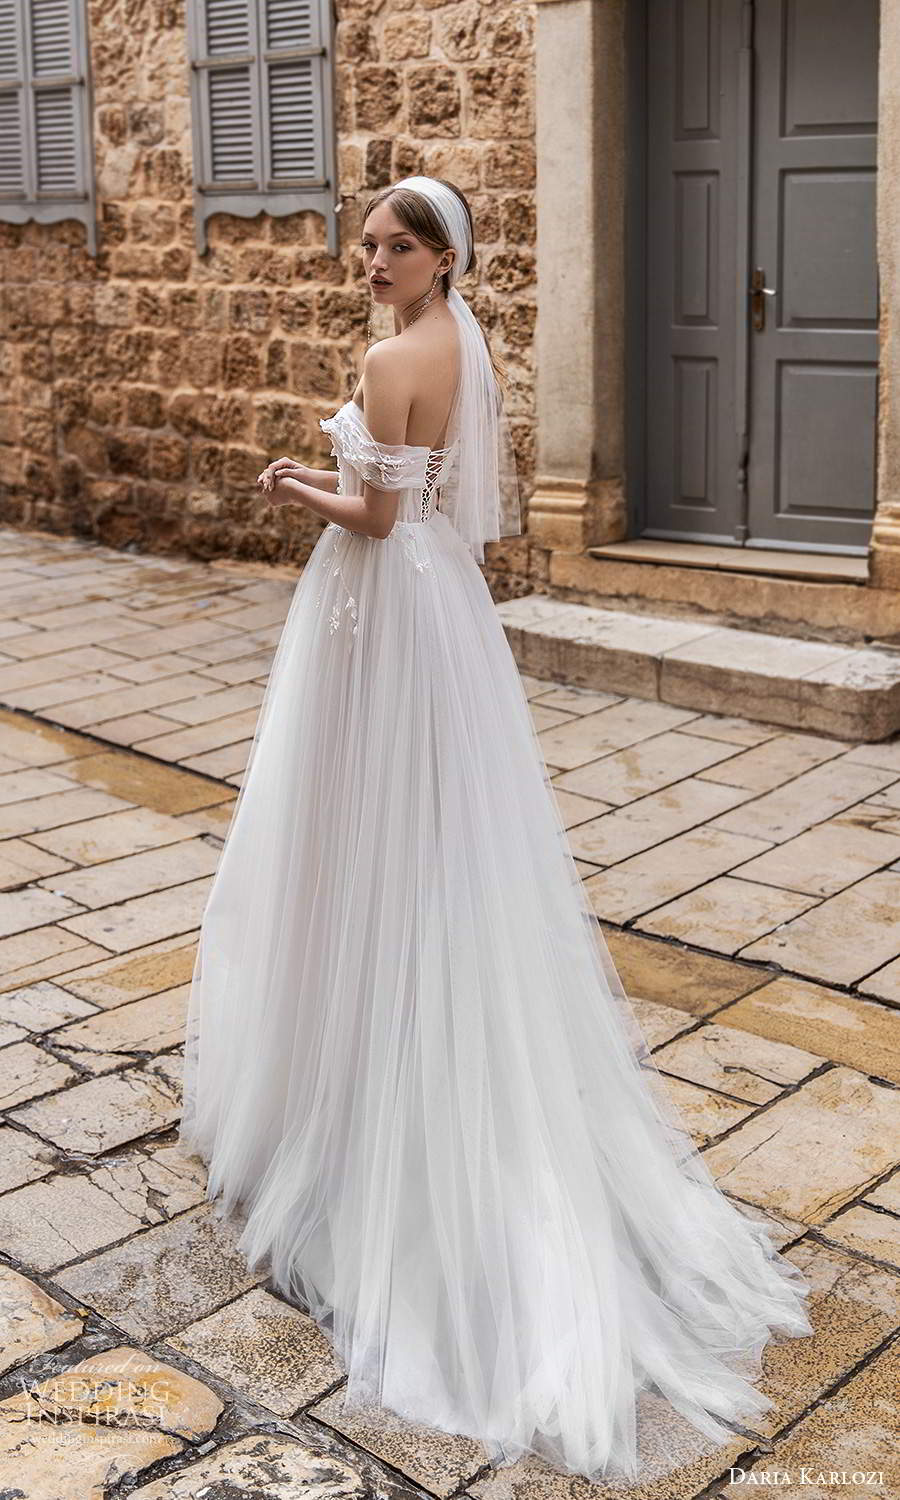 daria karlozi 2021 bridal off shoulder plunging v neckline ruched bodice a line ball gown wedding dress (2) bv